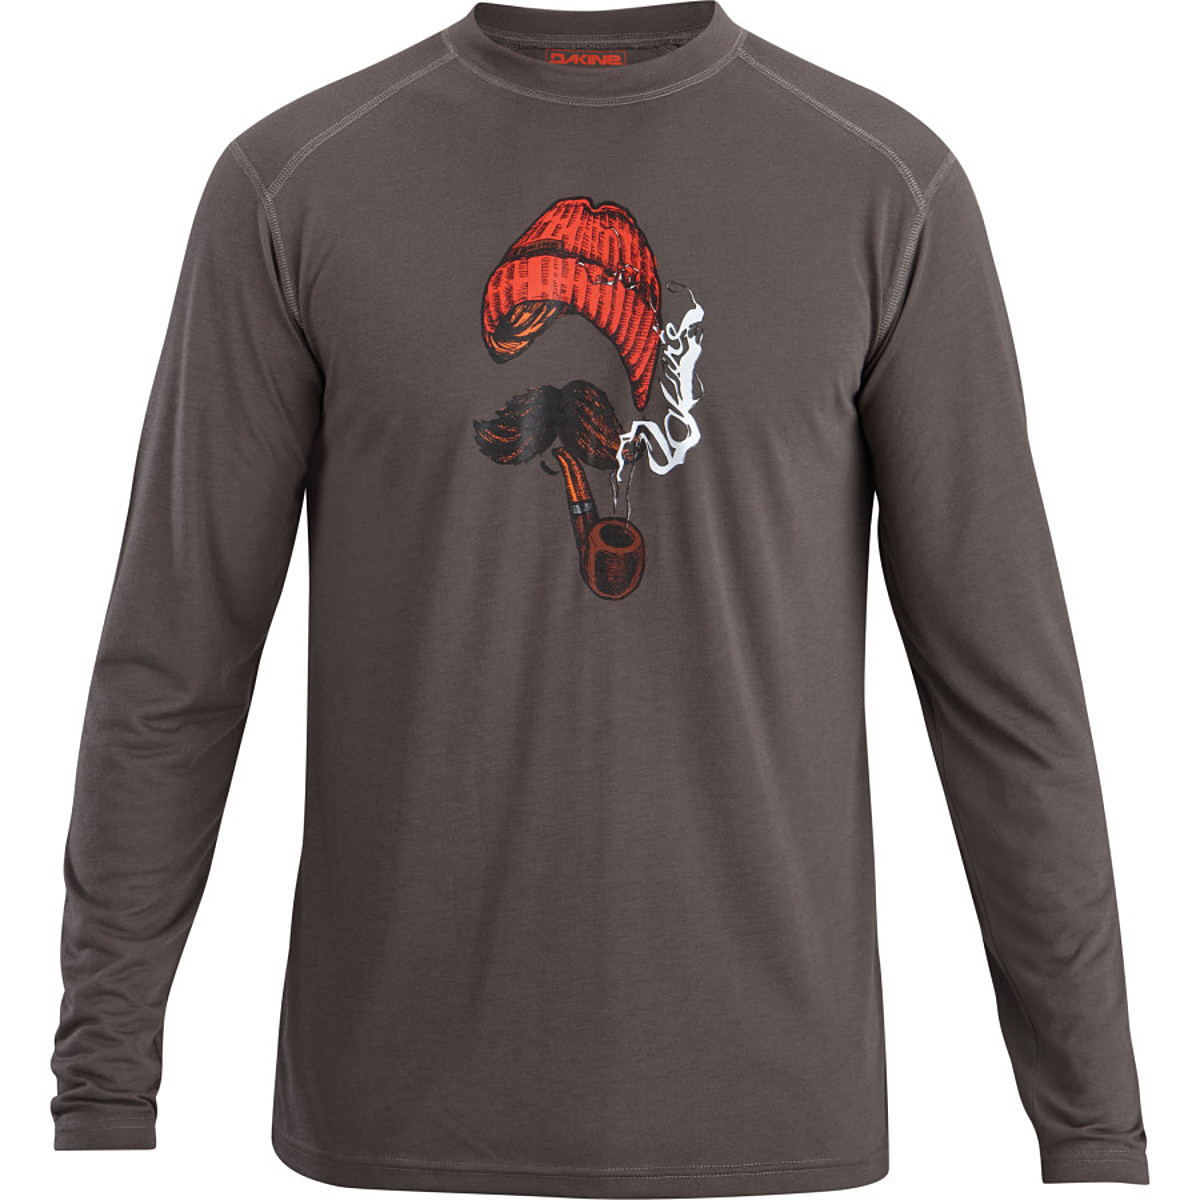 DaKine Quick Draw Crew Top